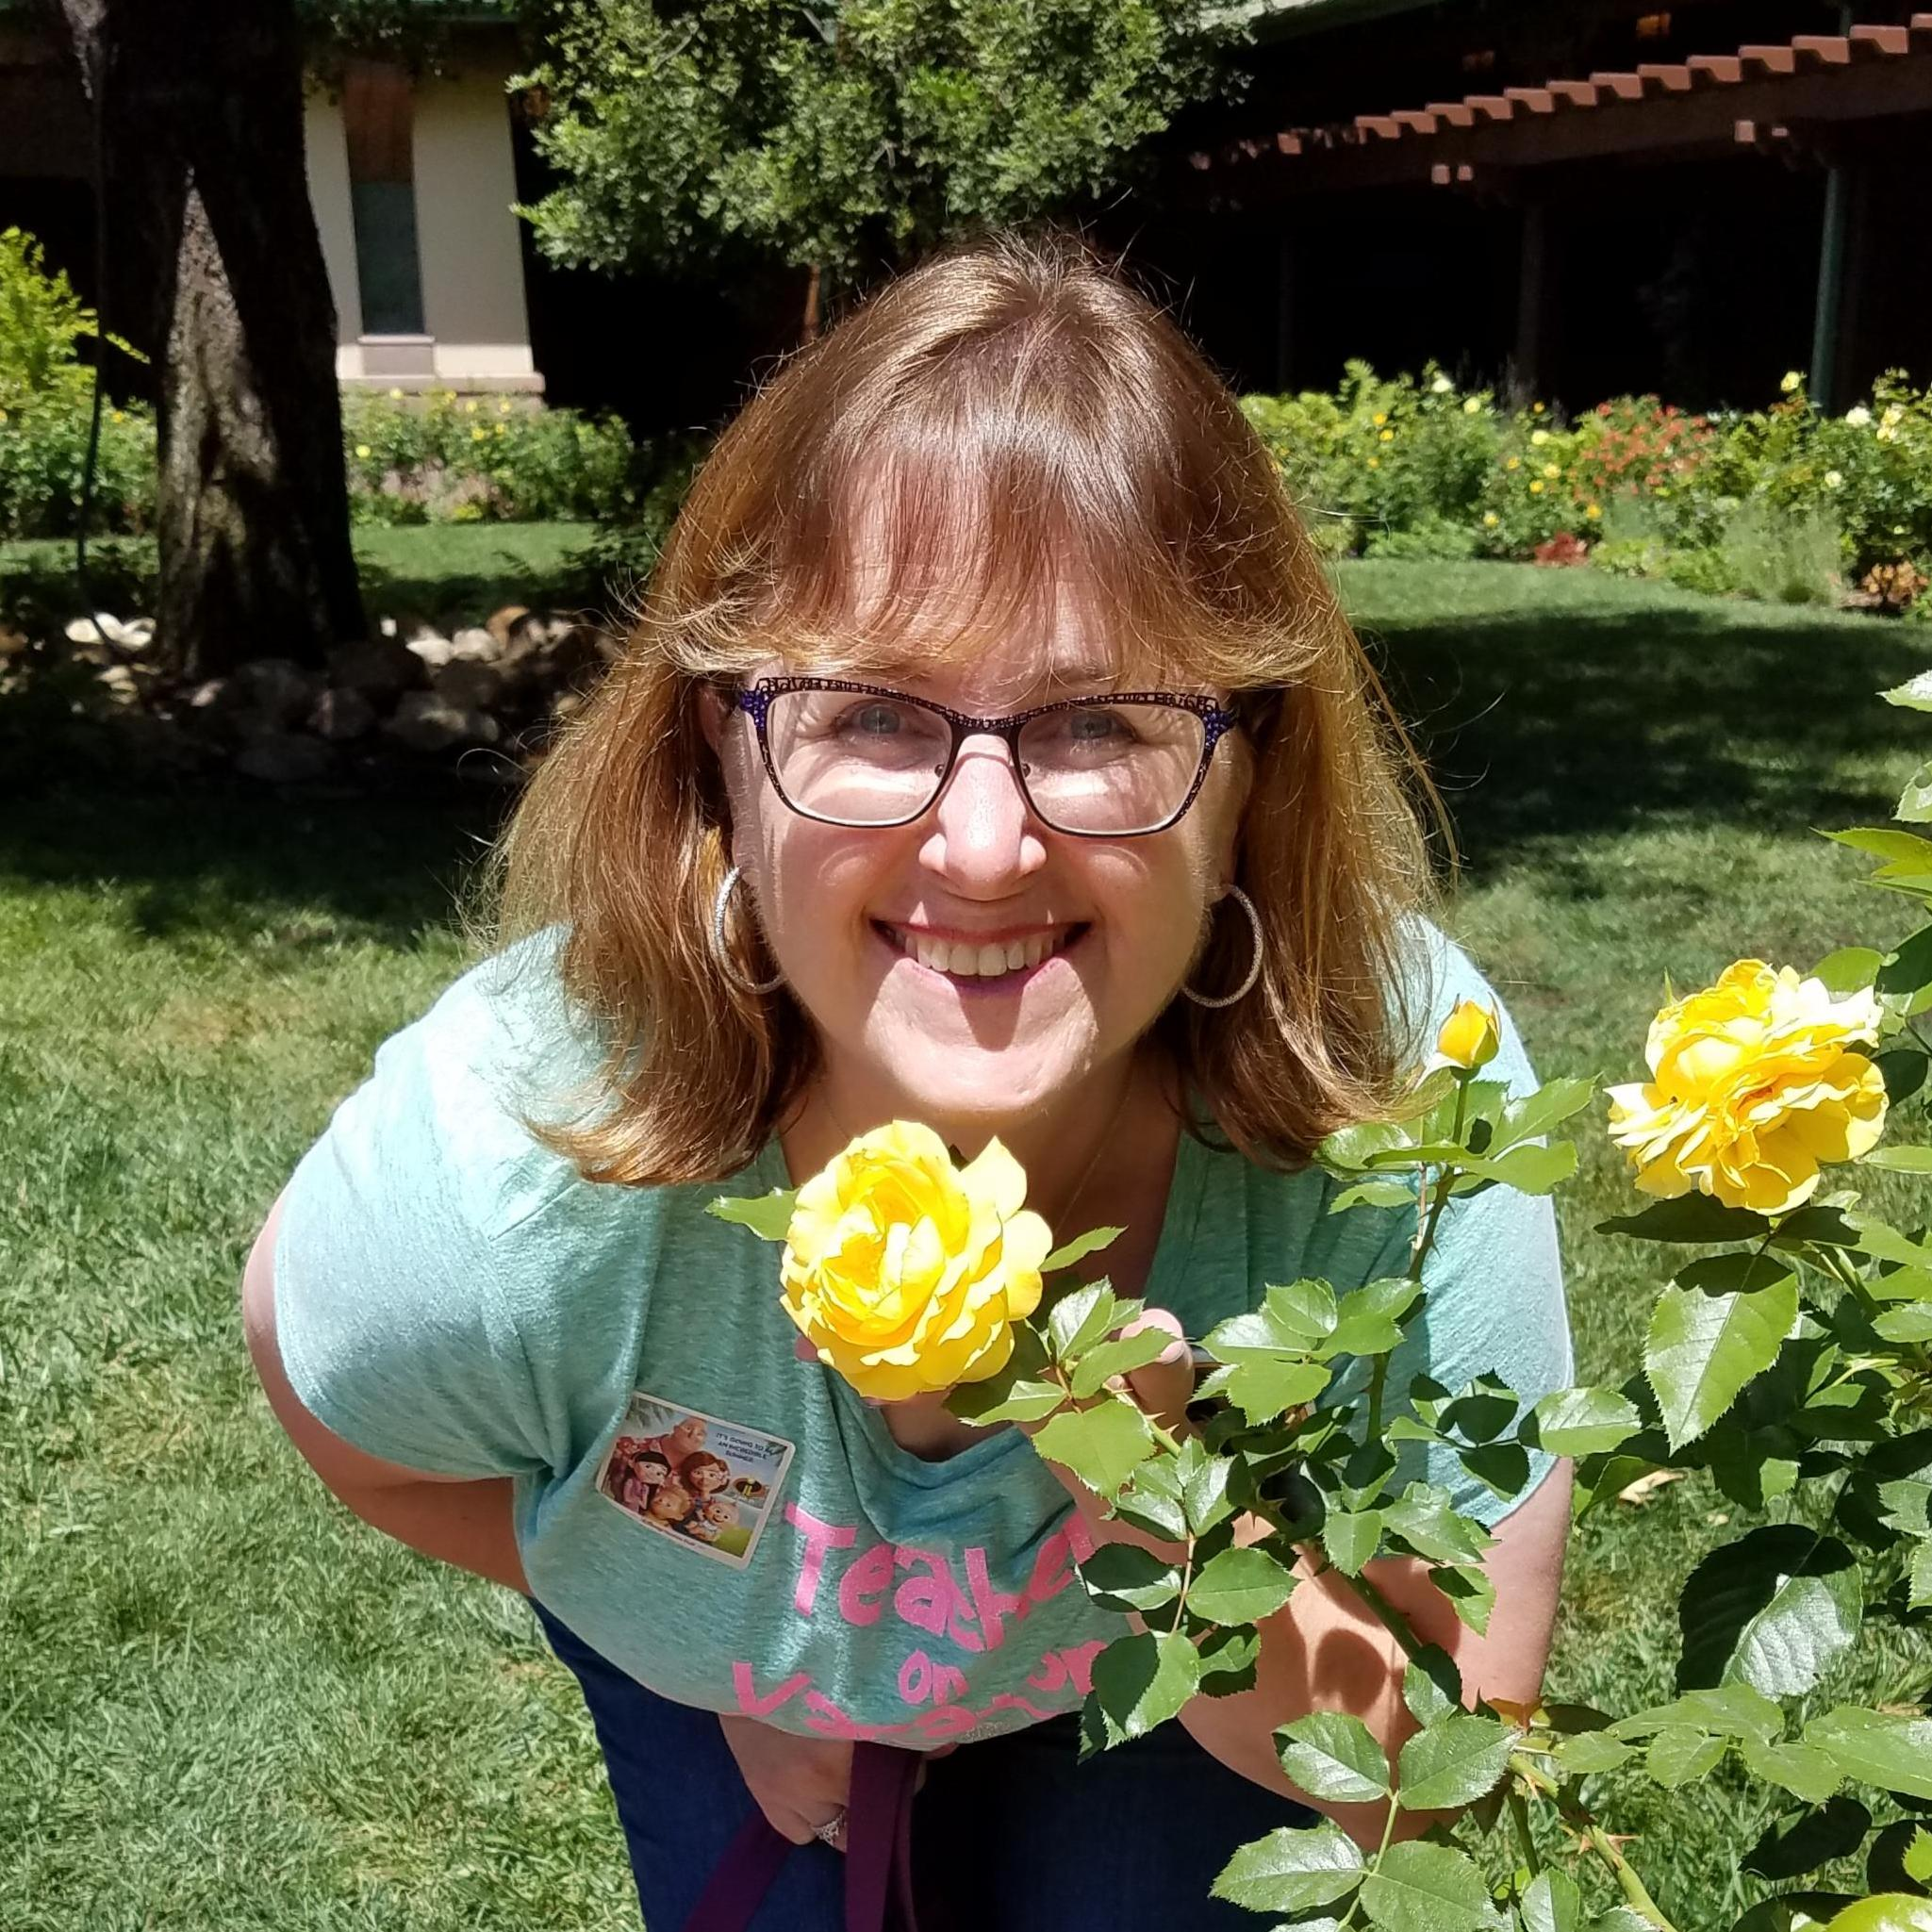 Raechelle Ivy's Profile Photo